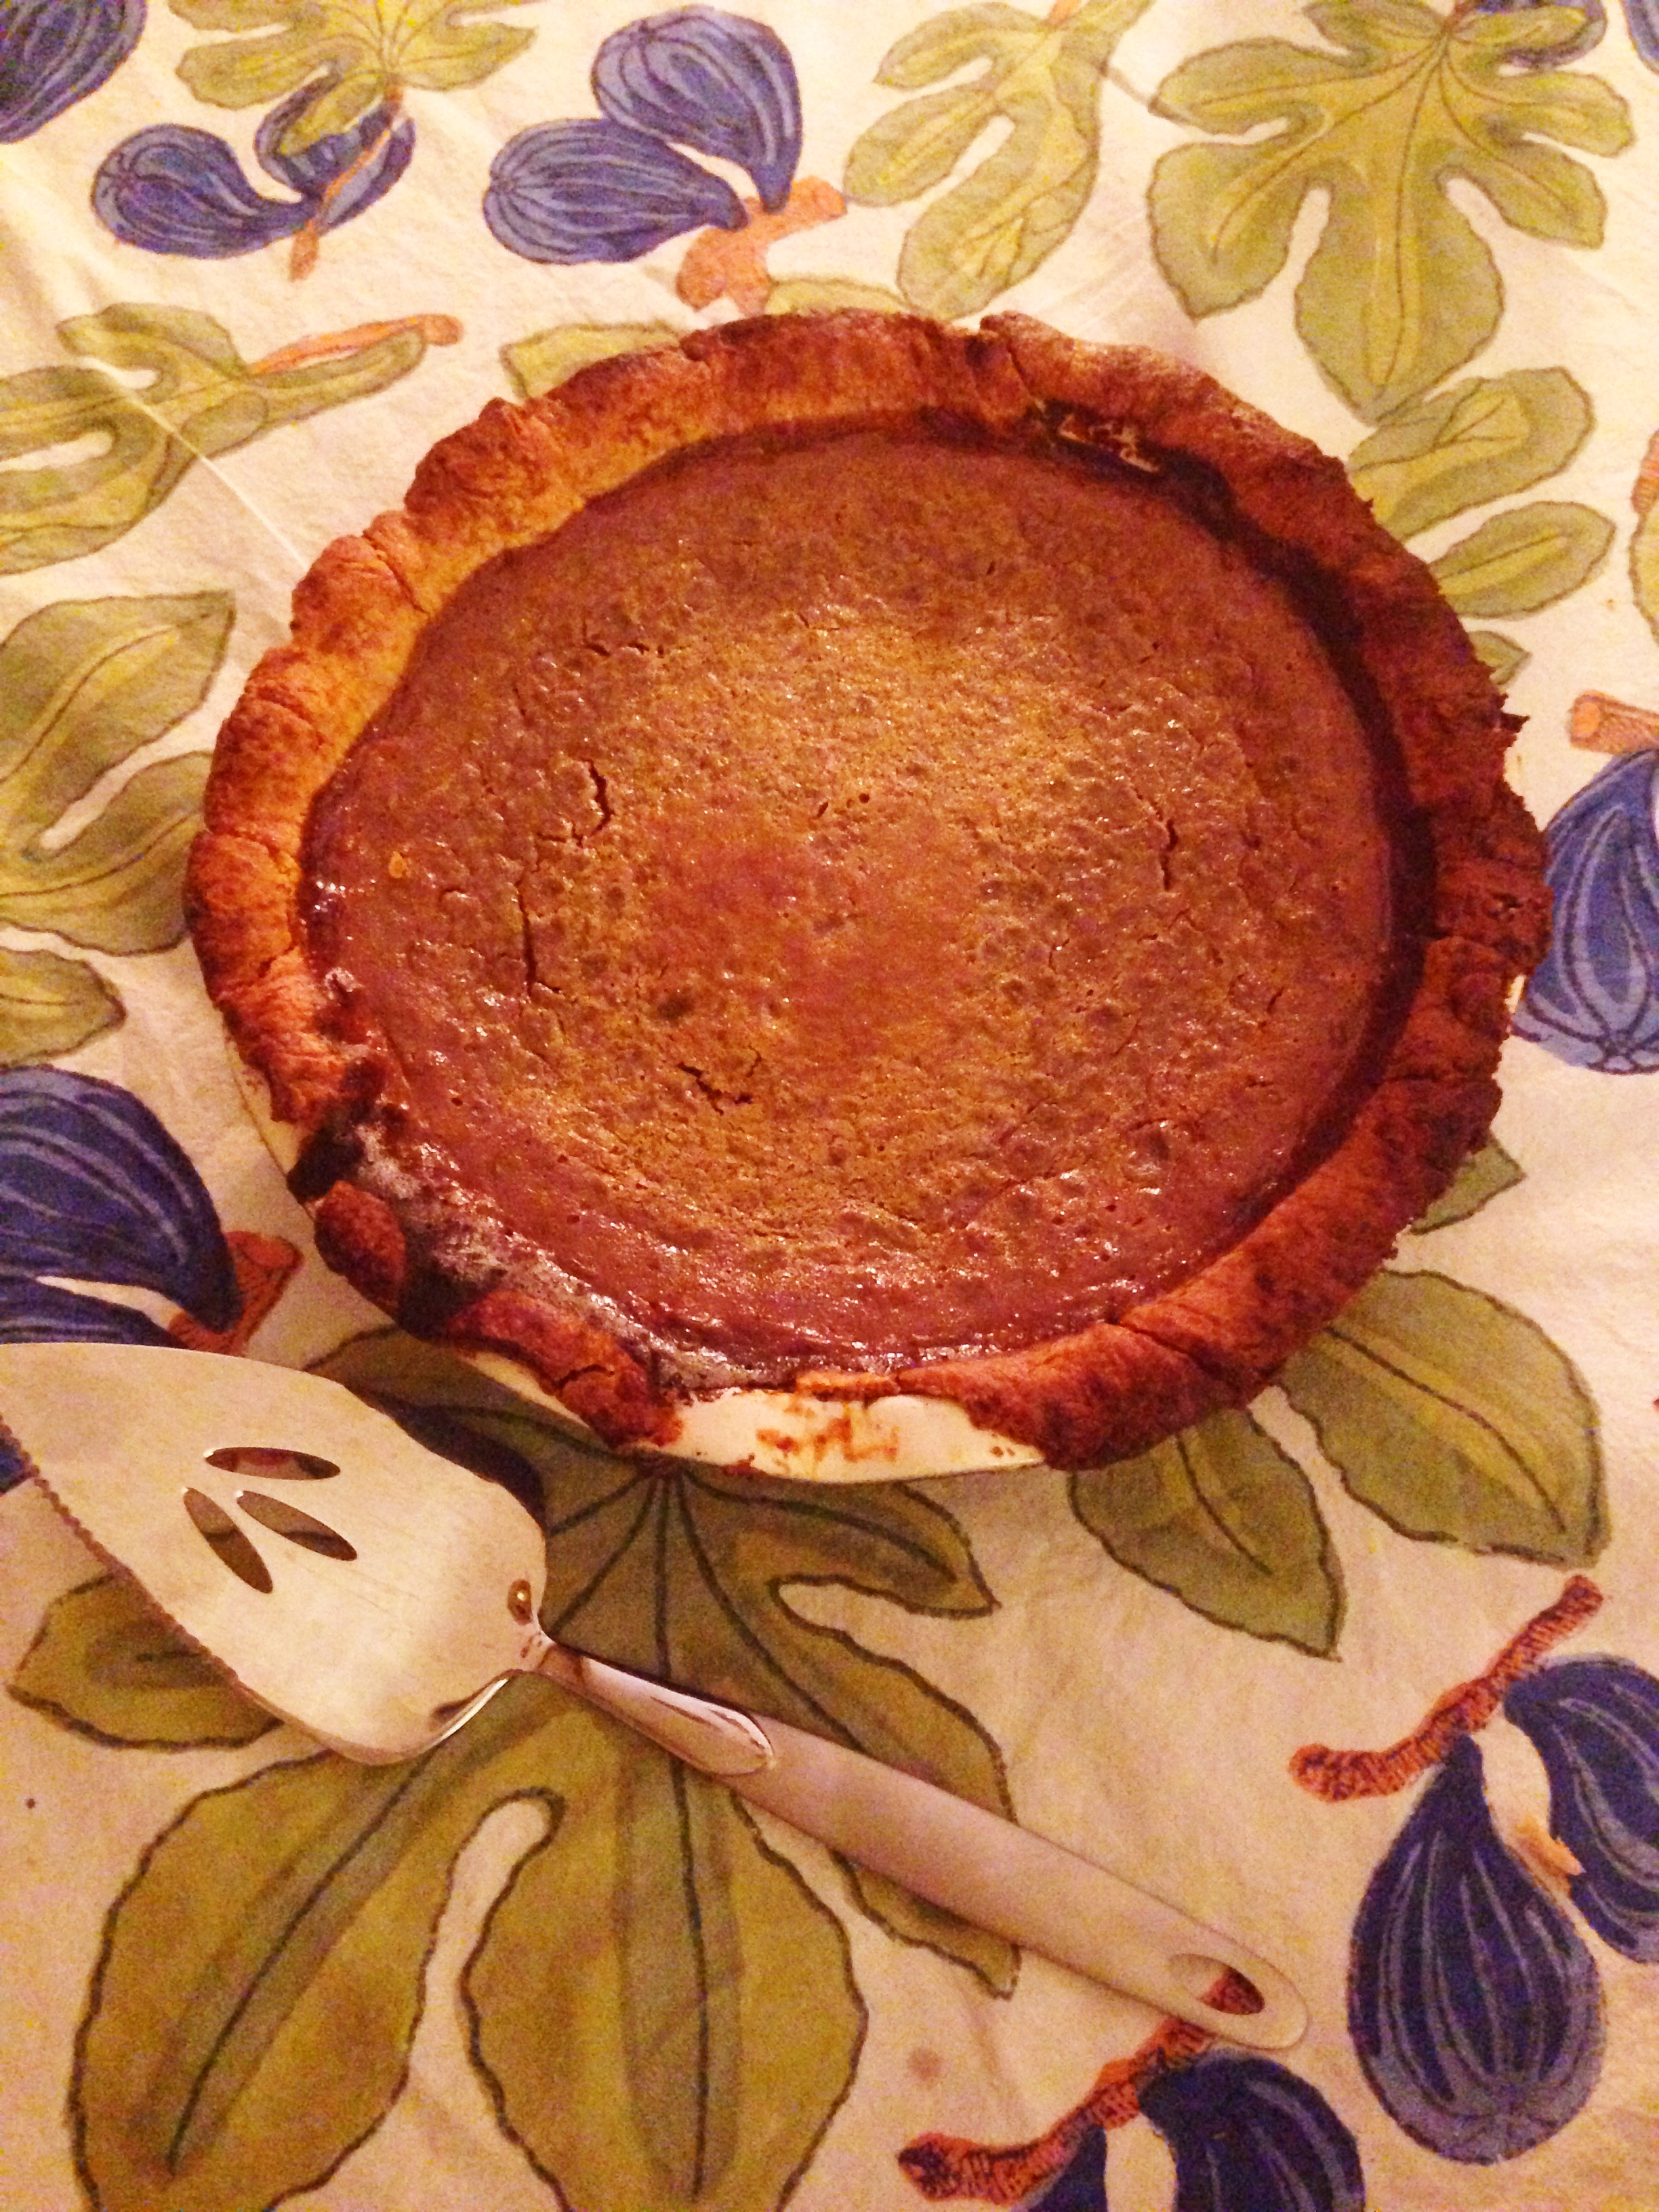 Redhead bakes pie for thanksgiving